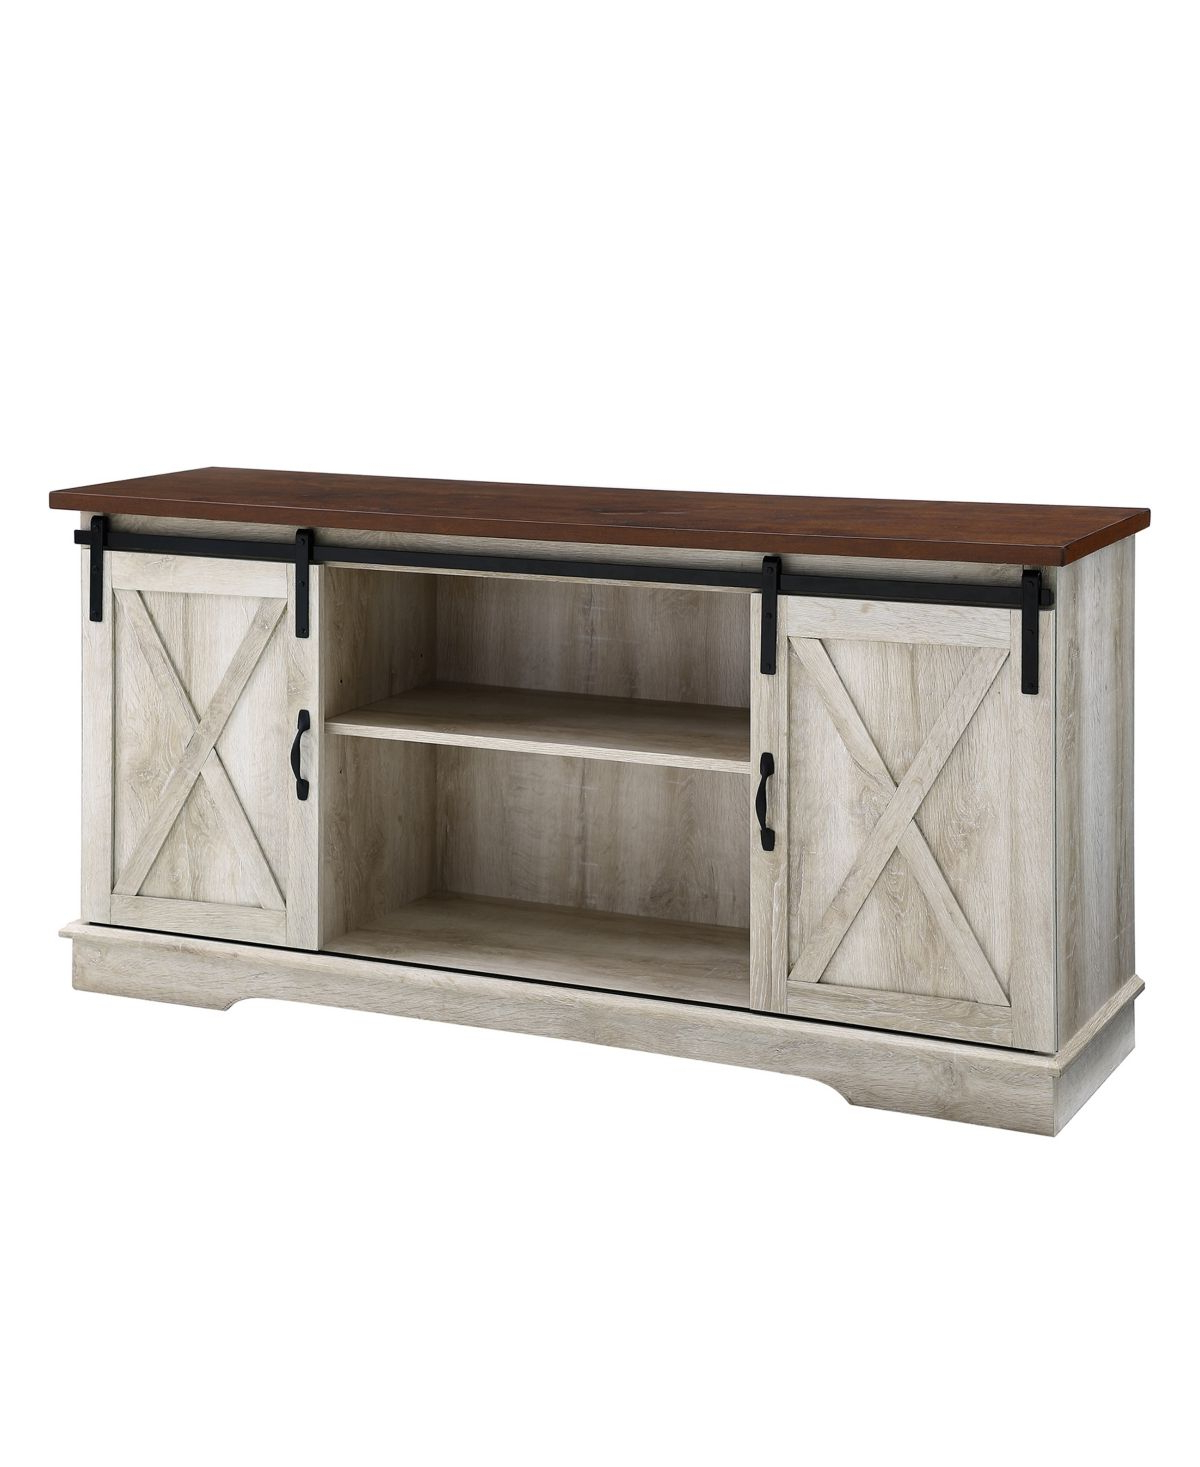 """Walker Edison 58"""" Farmhouse Tv Stand With Sliding Barn With Regard To Jaxpety 58"""" Farmhouse Sliding Barn Door Tv Stands (View 3 of 20)"""